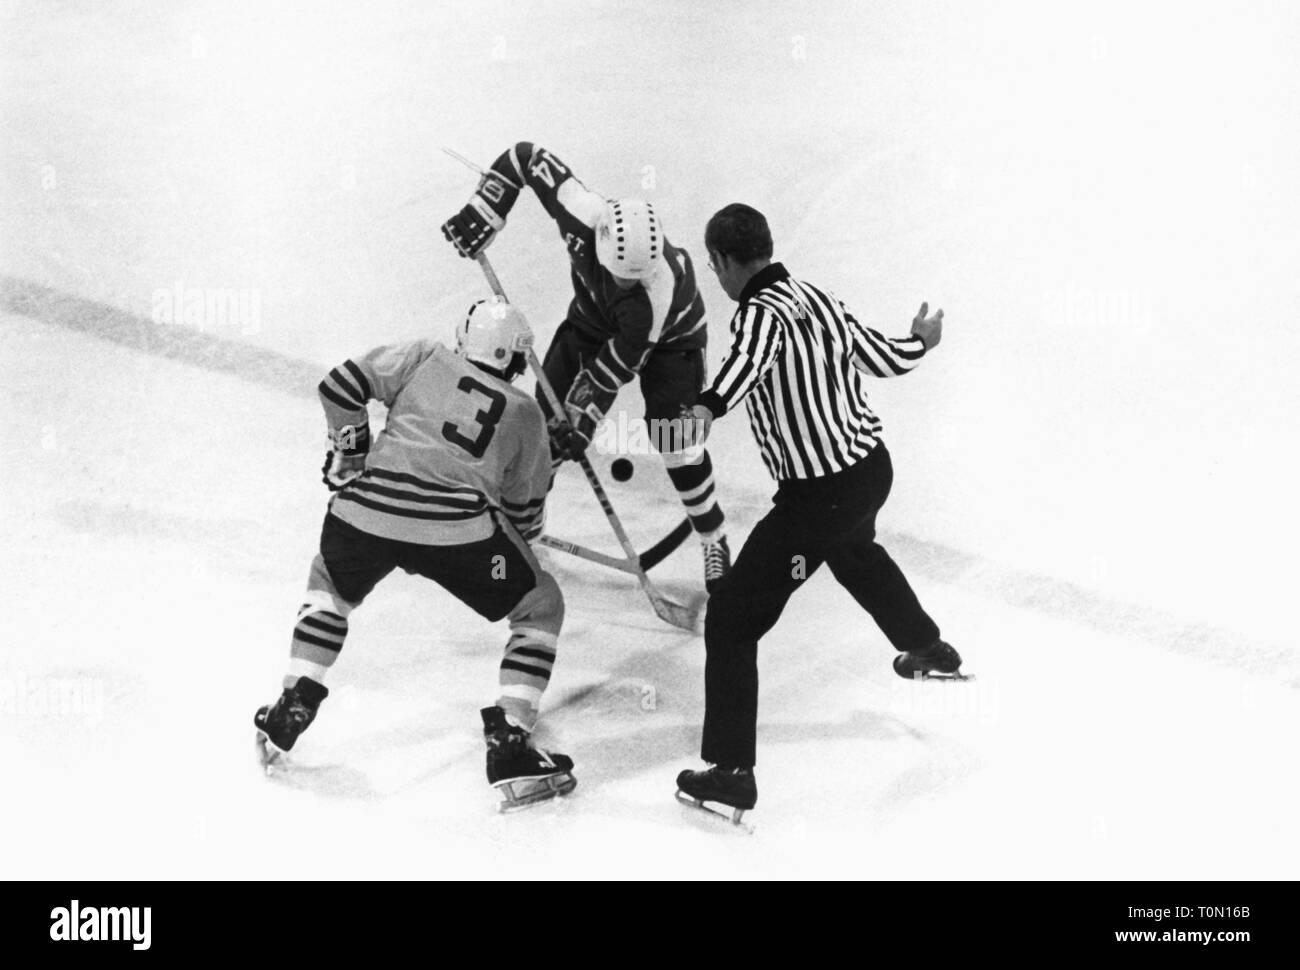 sports, winter sports, ice hockey, game, faceoff at the centre line, North America, 1970s, Additional-Rights-Clearance-Info-Not-Available - Stock Image